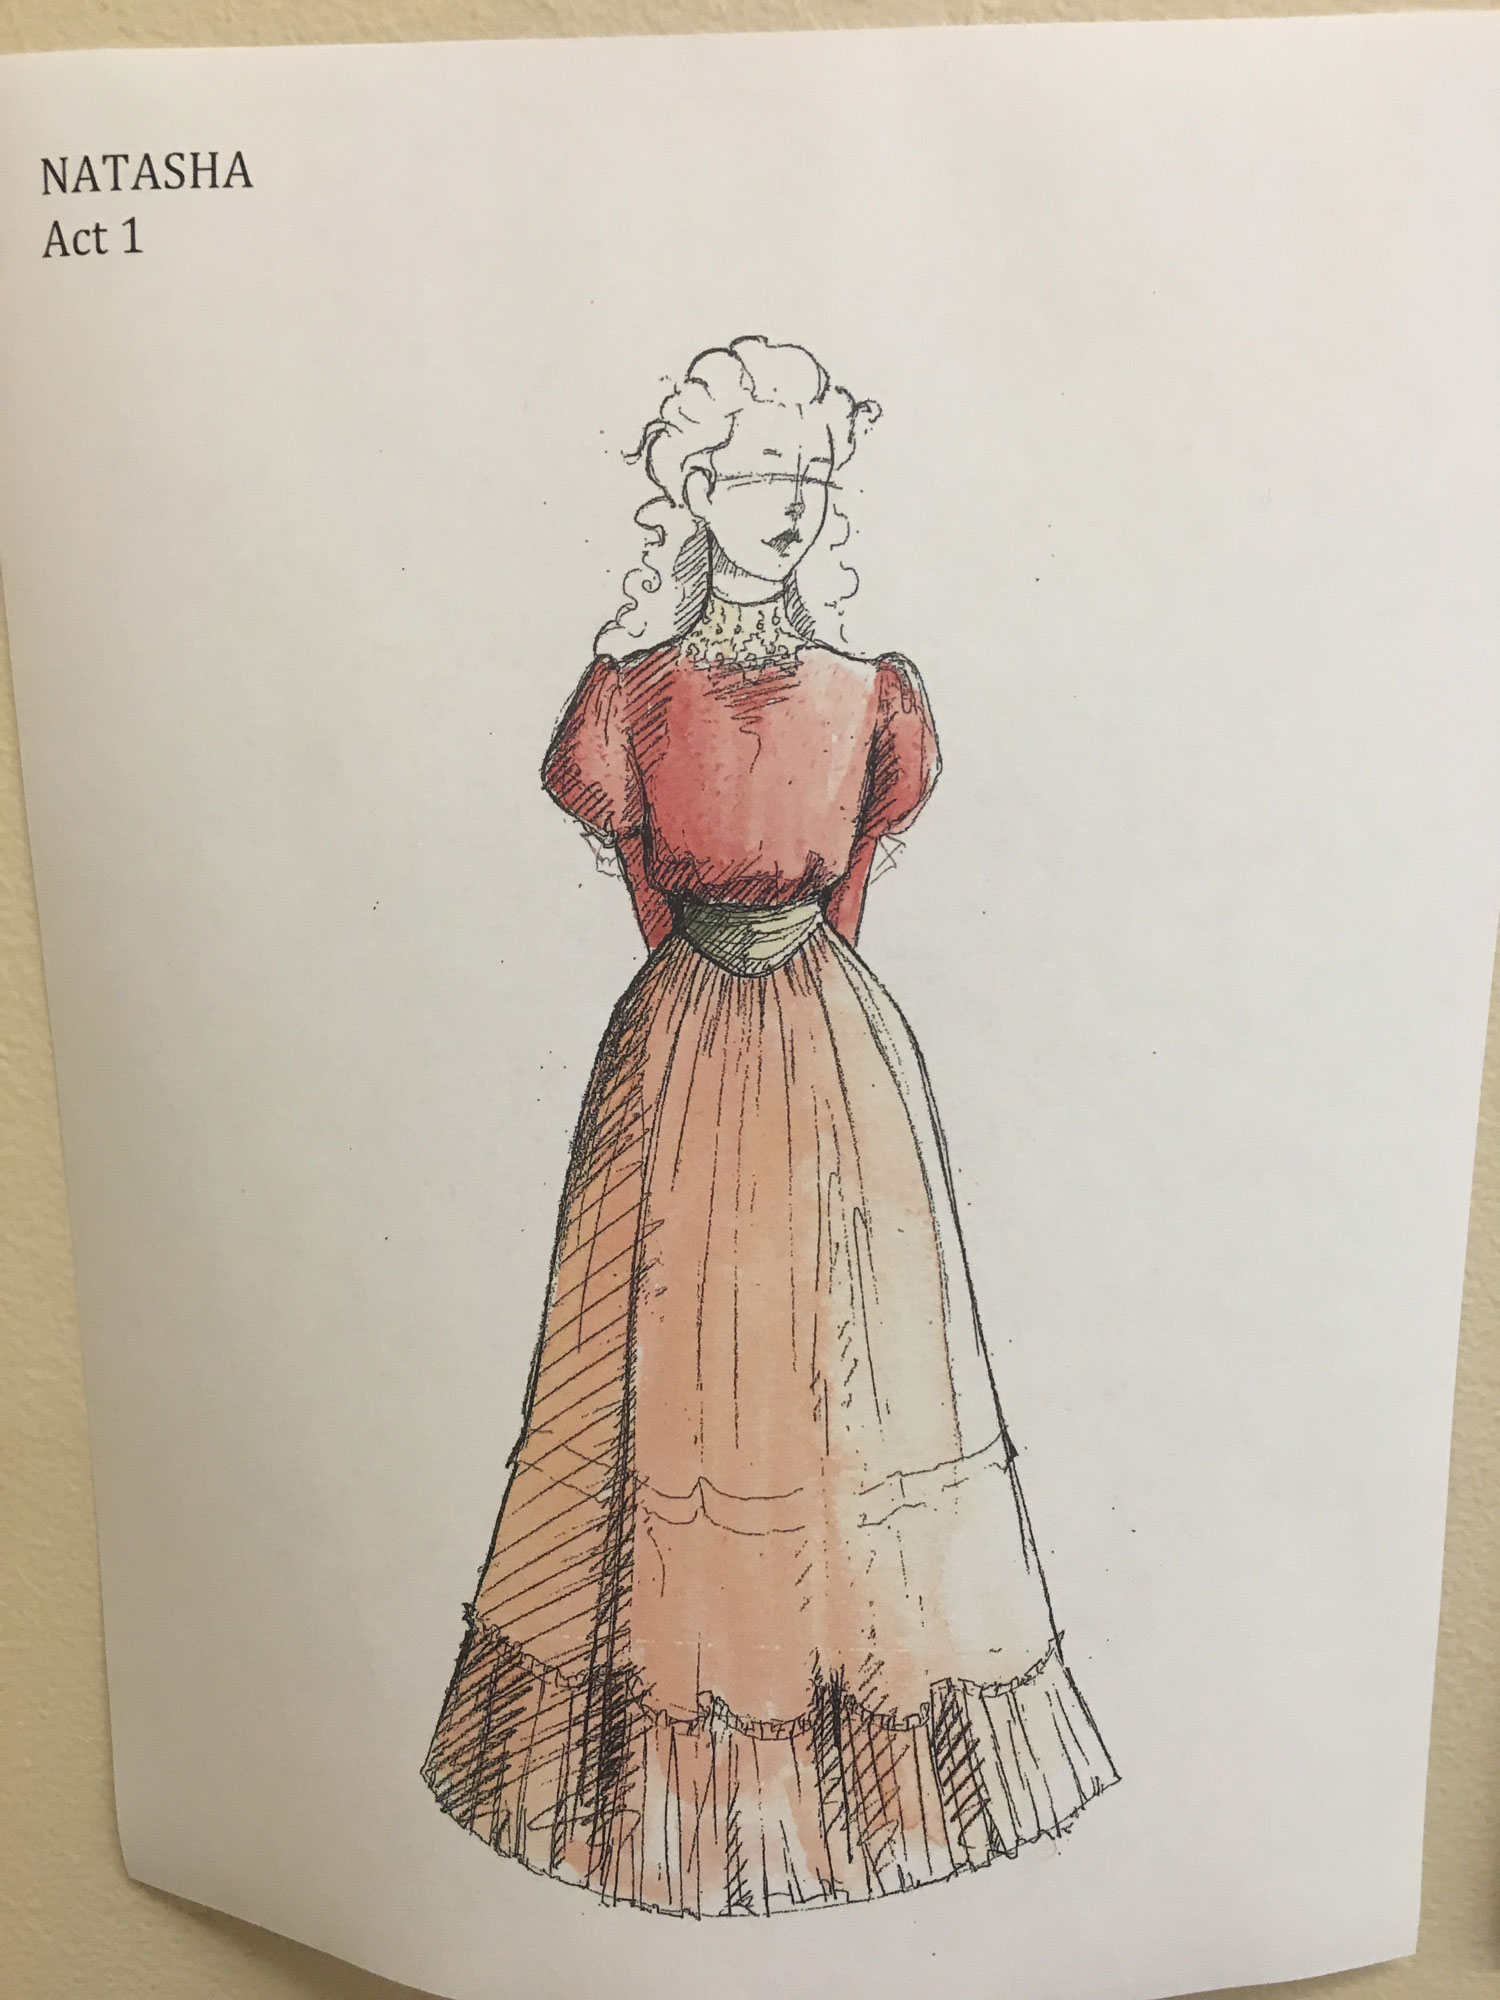 A sketch of a dress worn by Anna in Act I